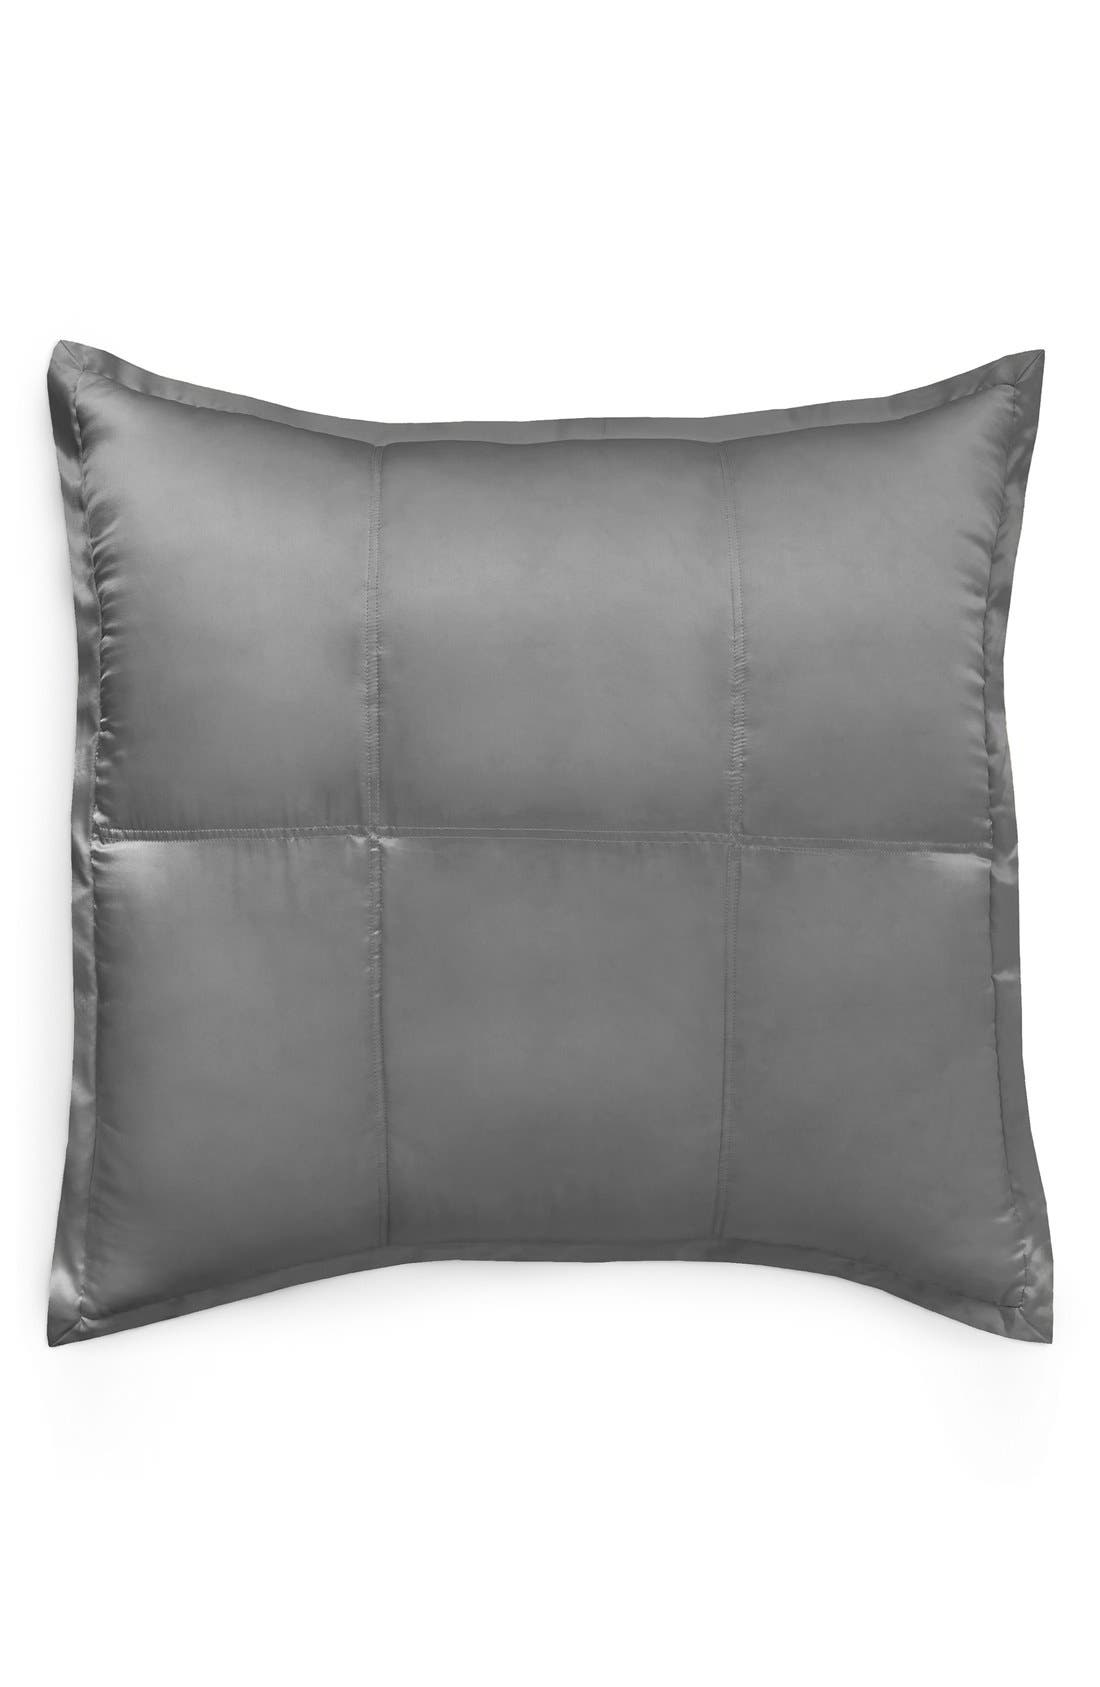 Donna Karan Collection 'Surface' Silk Charmeuse Euro Pillow Sham